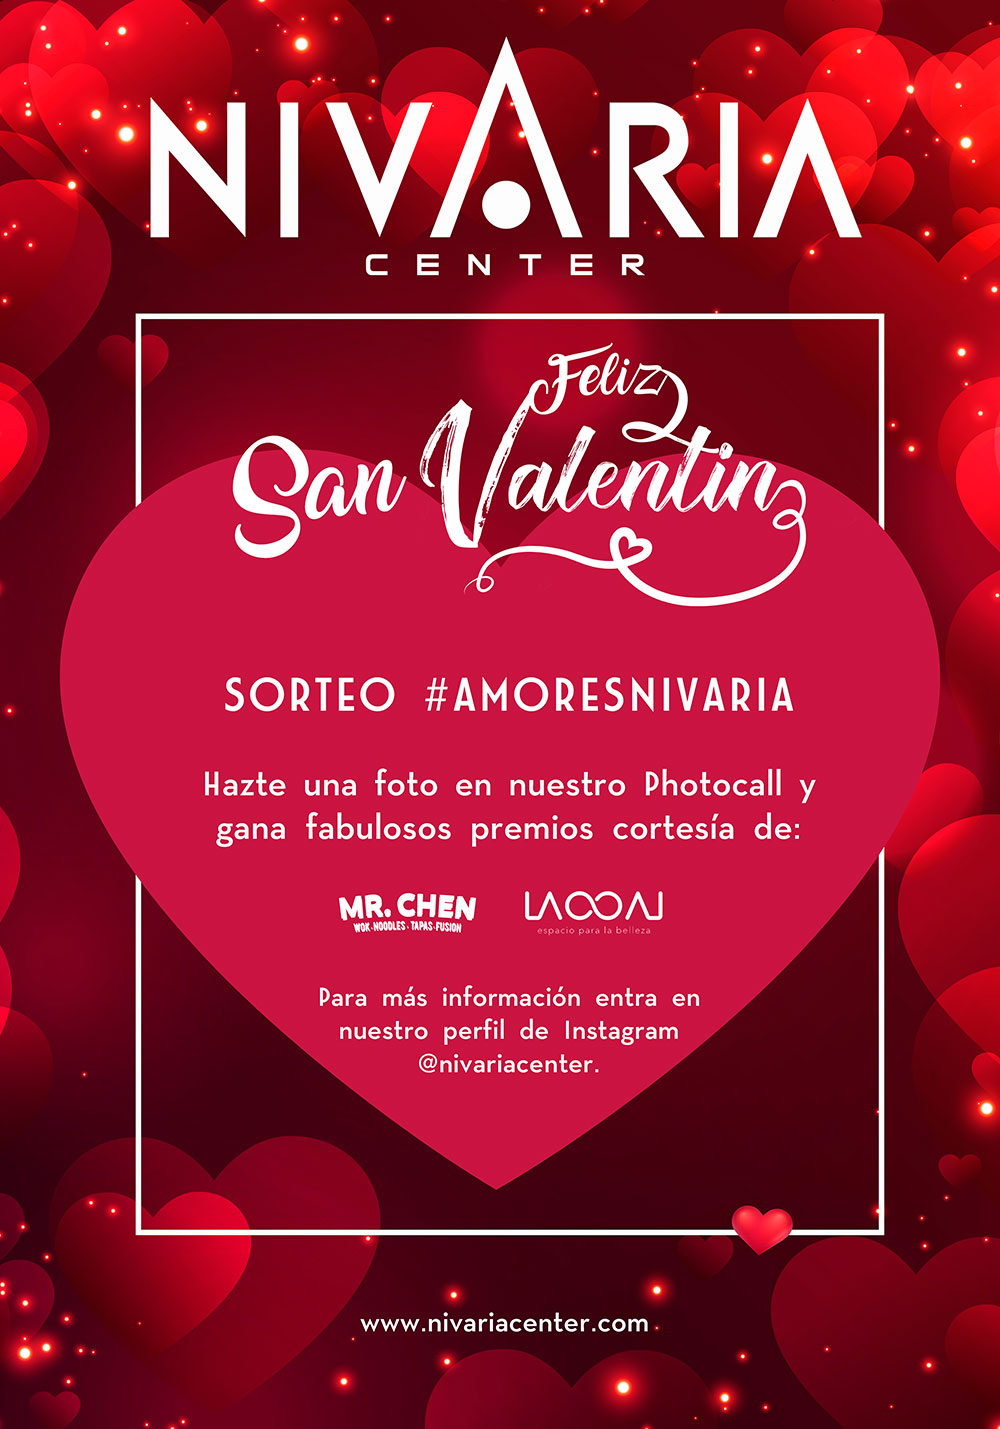 san-valentin-nivaria-center-Cartel-70-x-100